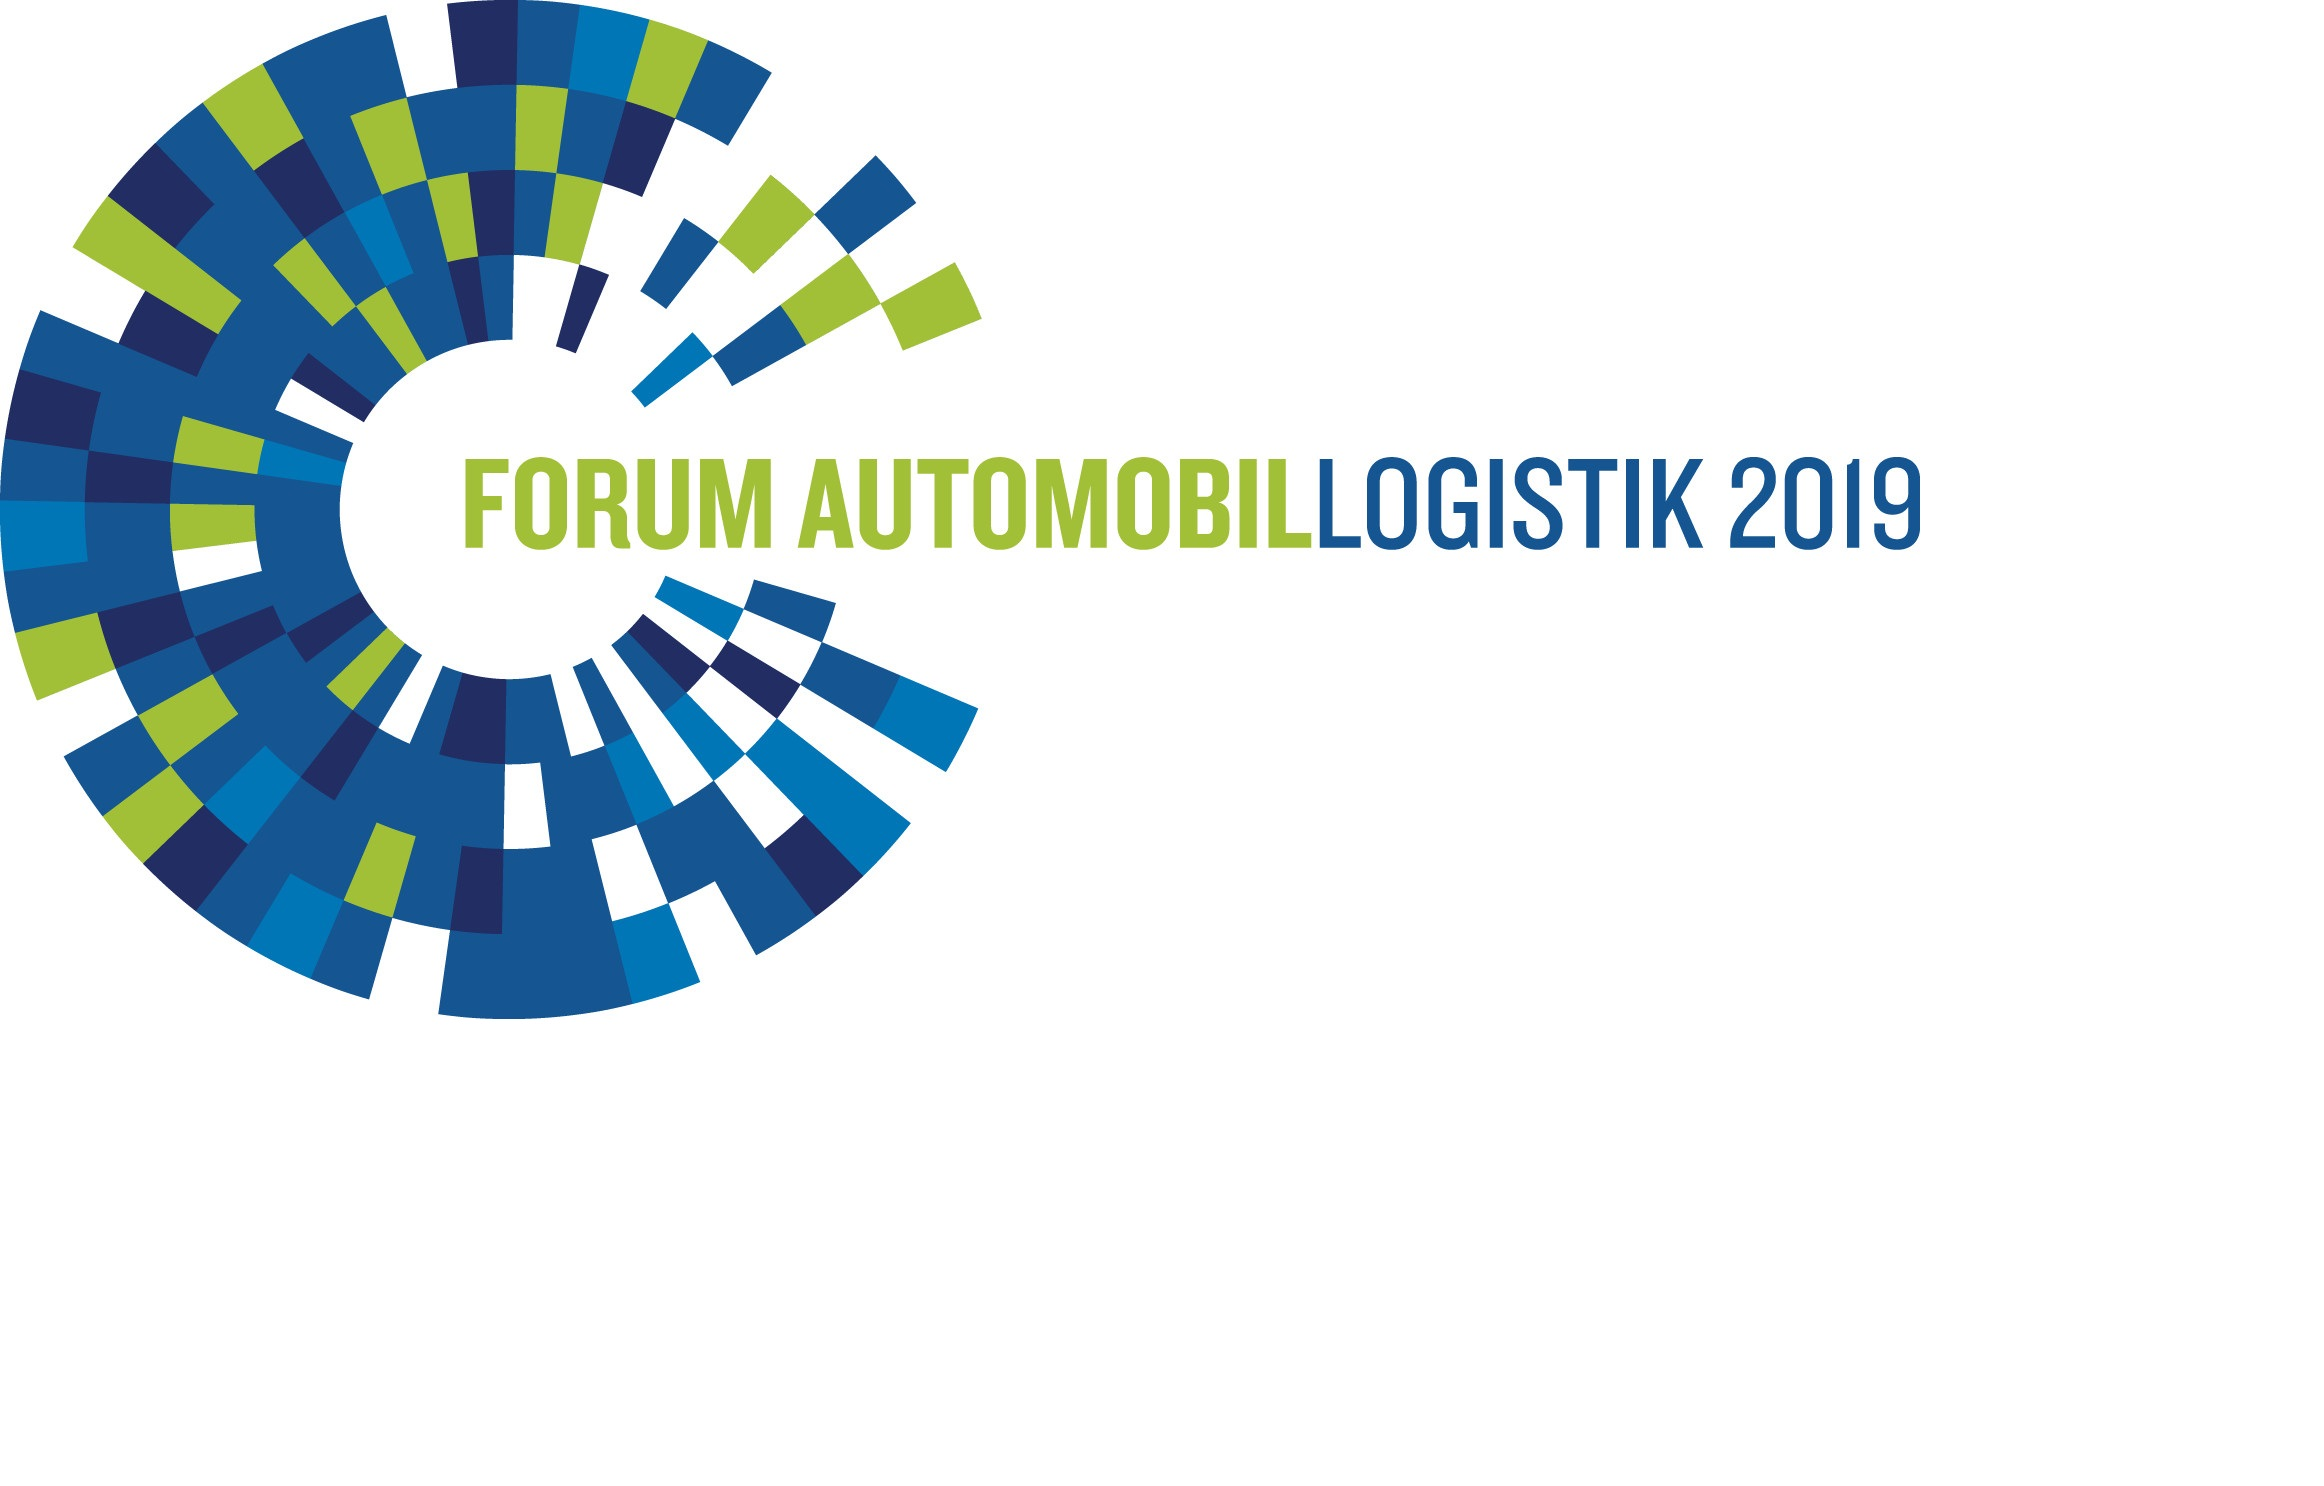 Forum Automobillogistik 2019